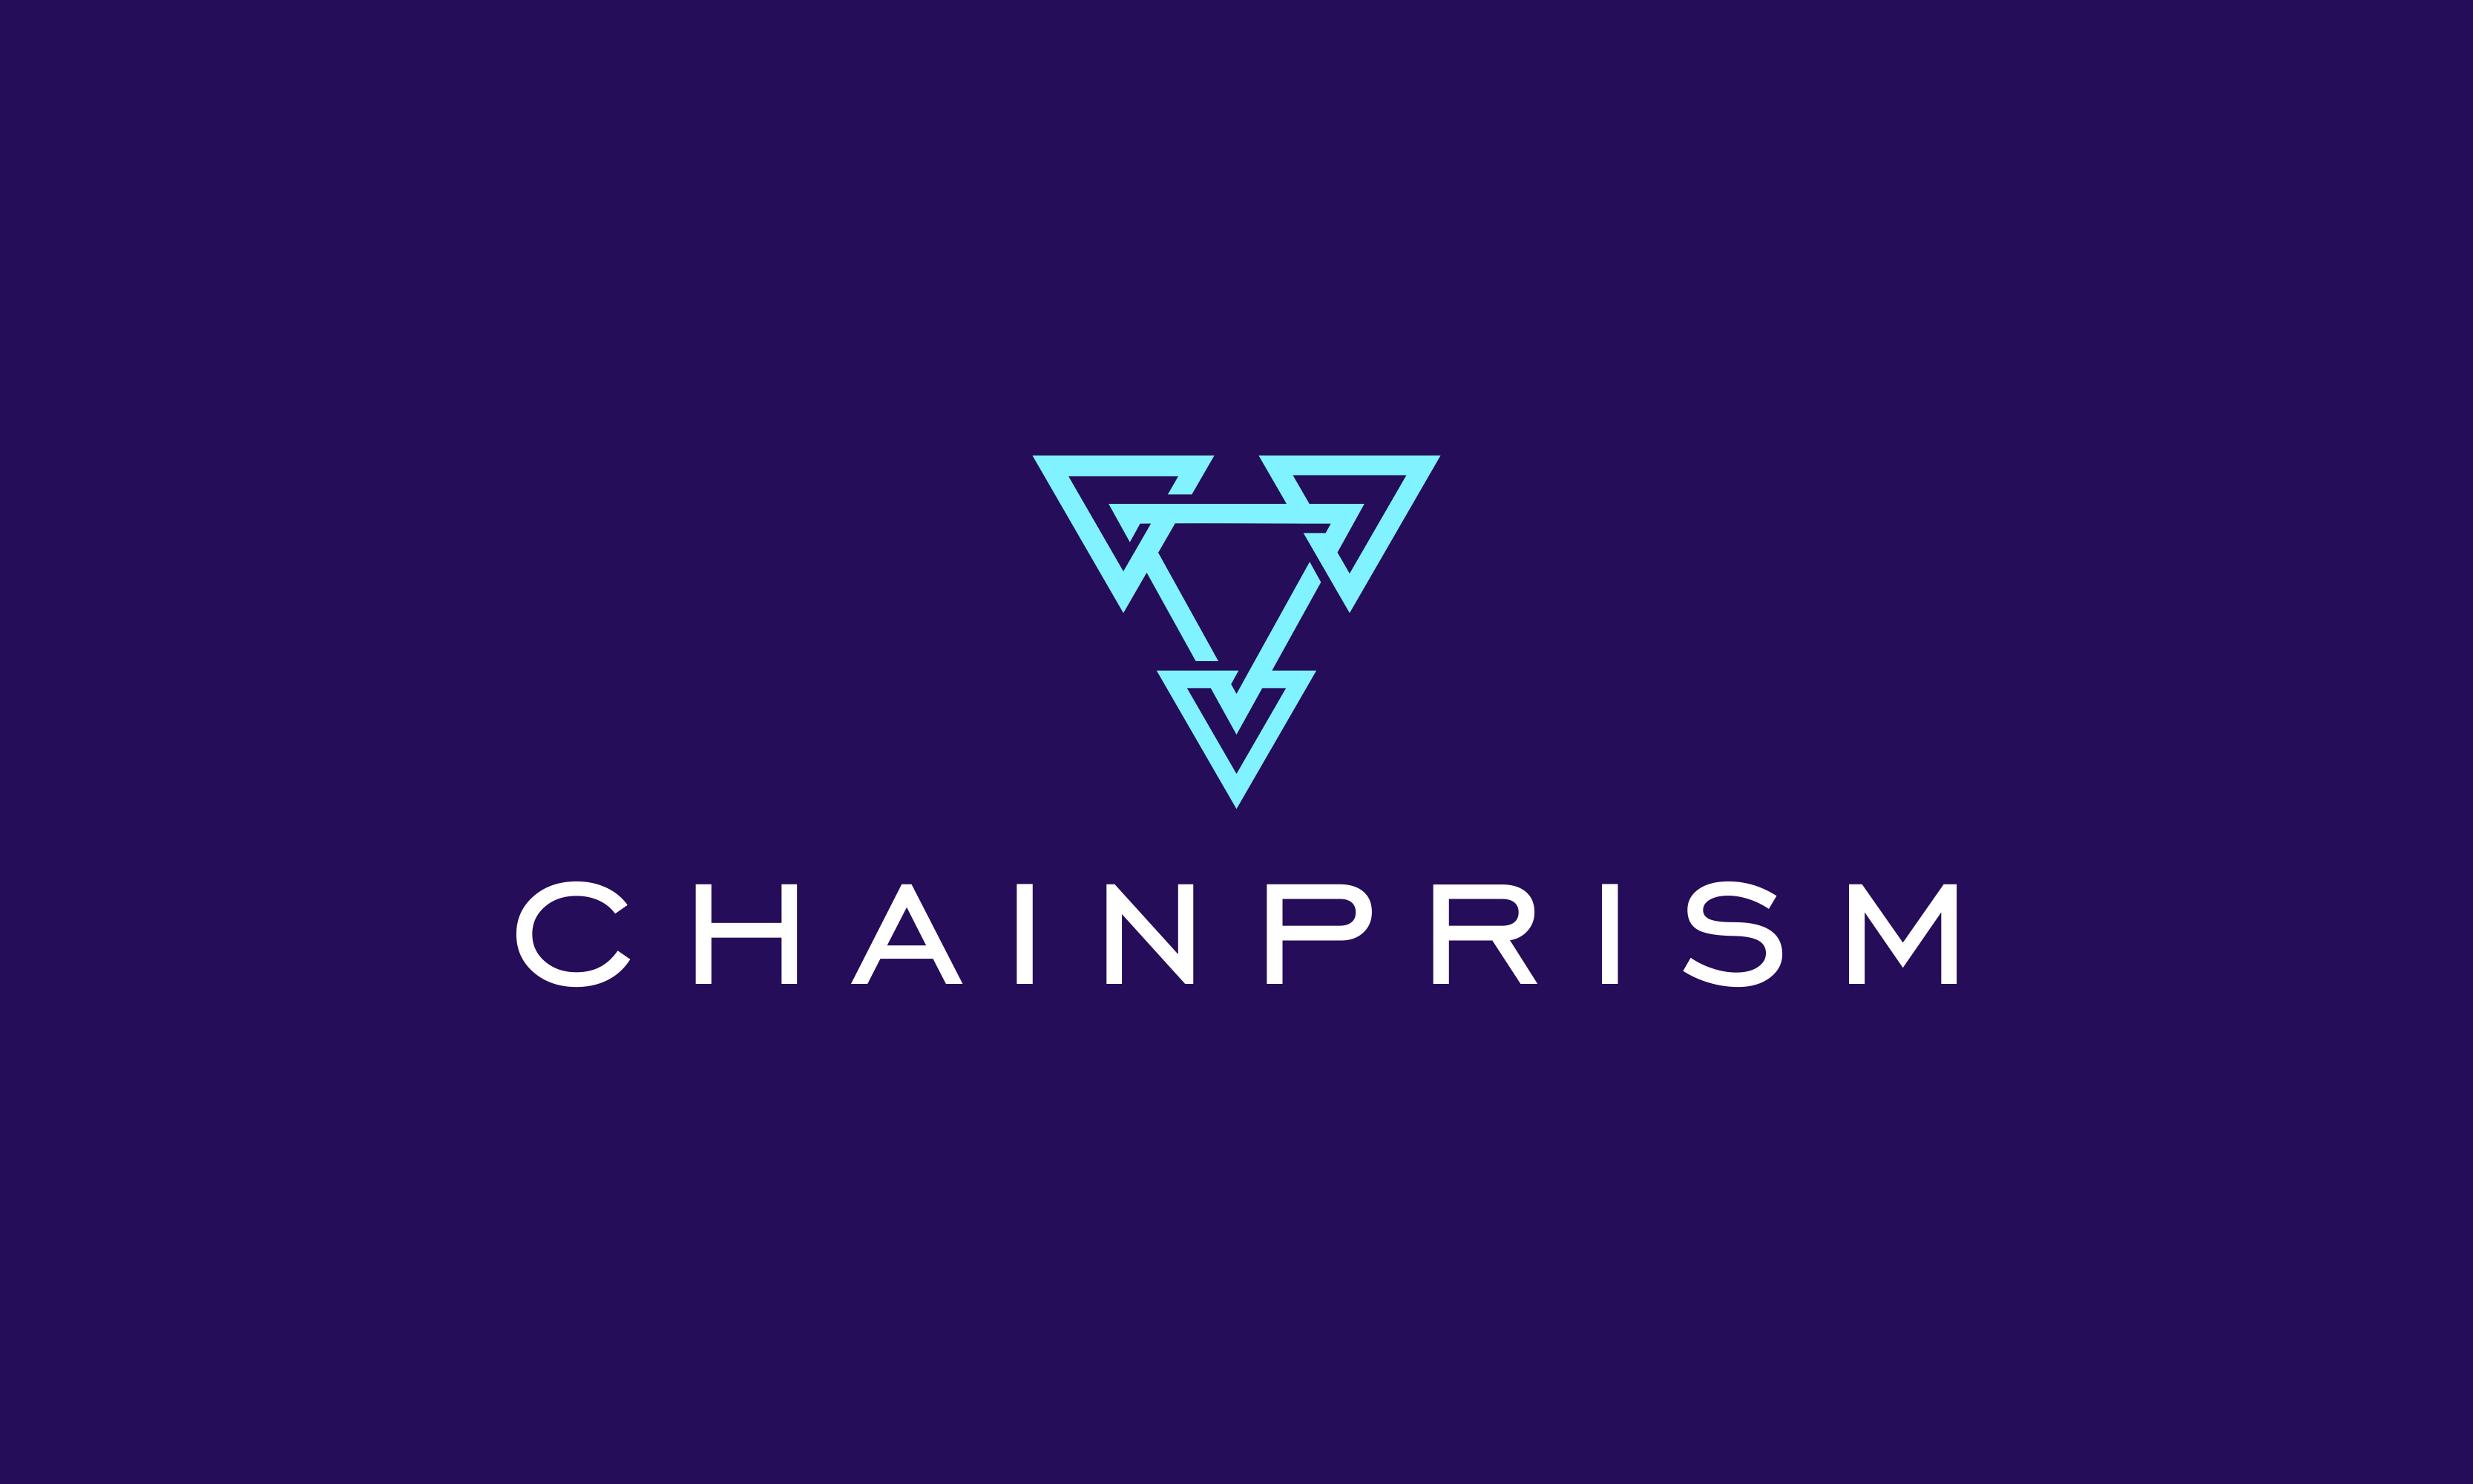 Chainprism